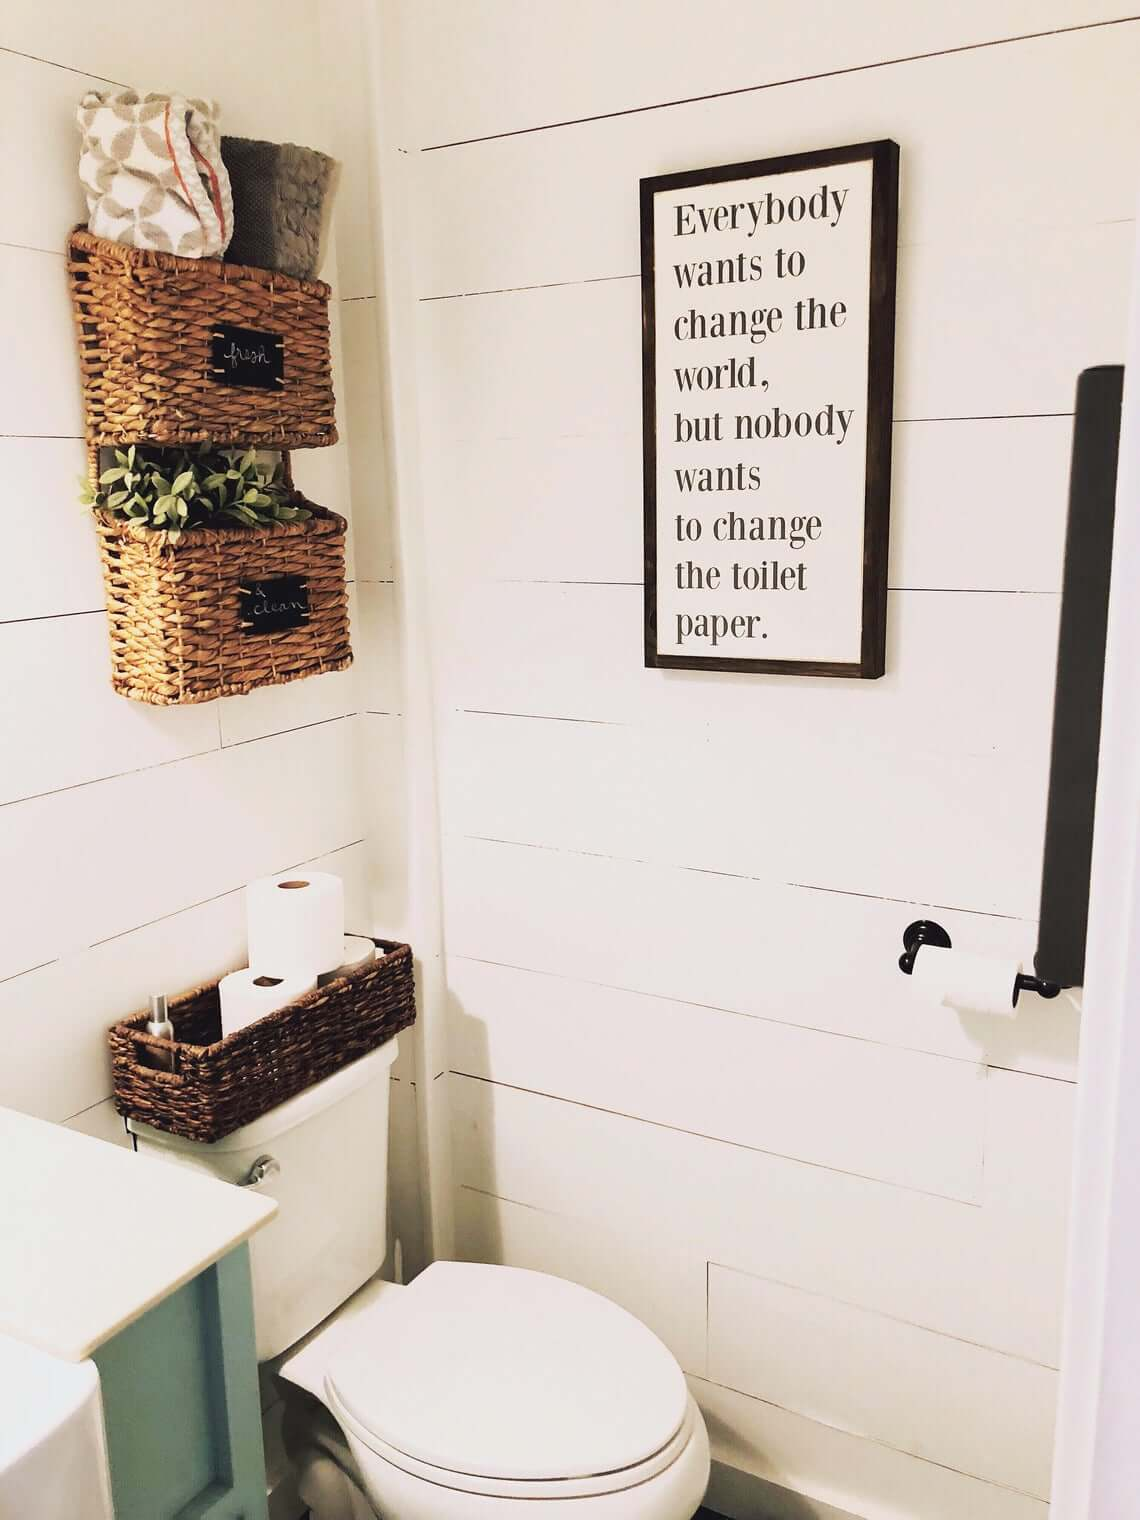 Storage Galore with Woven Baskets and Fun Bathroom Sign